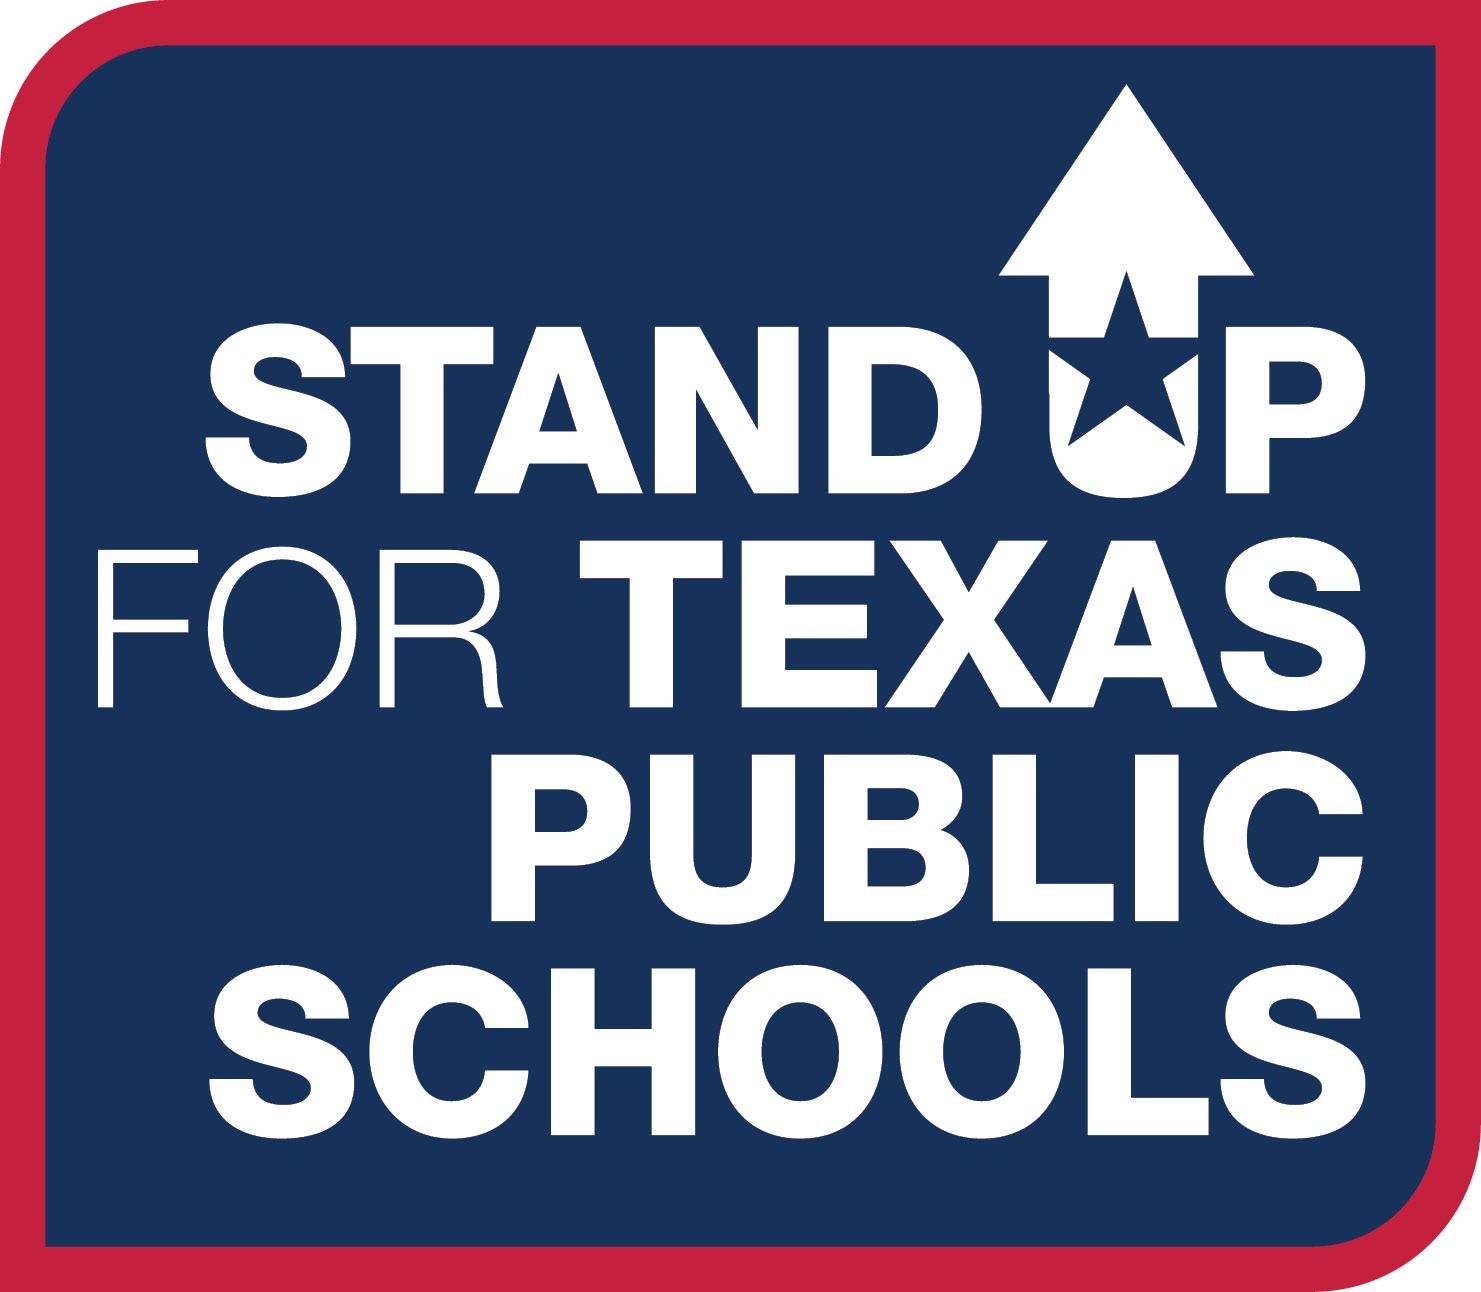 Words 'Stand Up for Texas Public Schools' stacked on top of each other